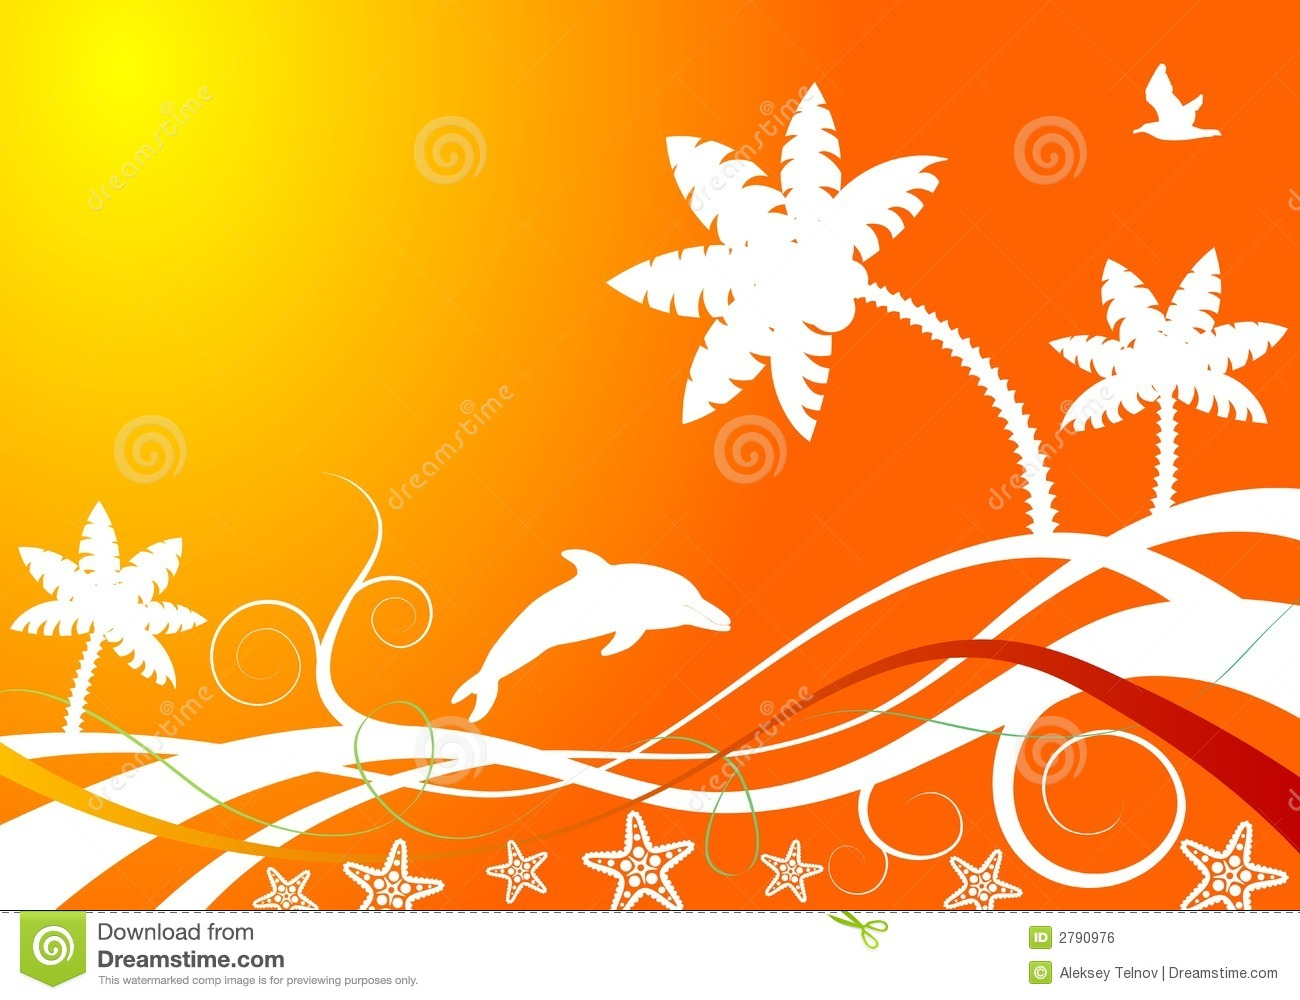 Abstract Sports Background Royalty Free Stock Image: Abstract Summer Background Stock Vector. Illustration Of